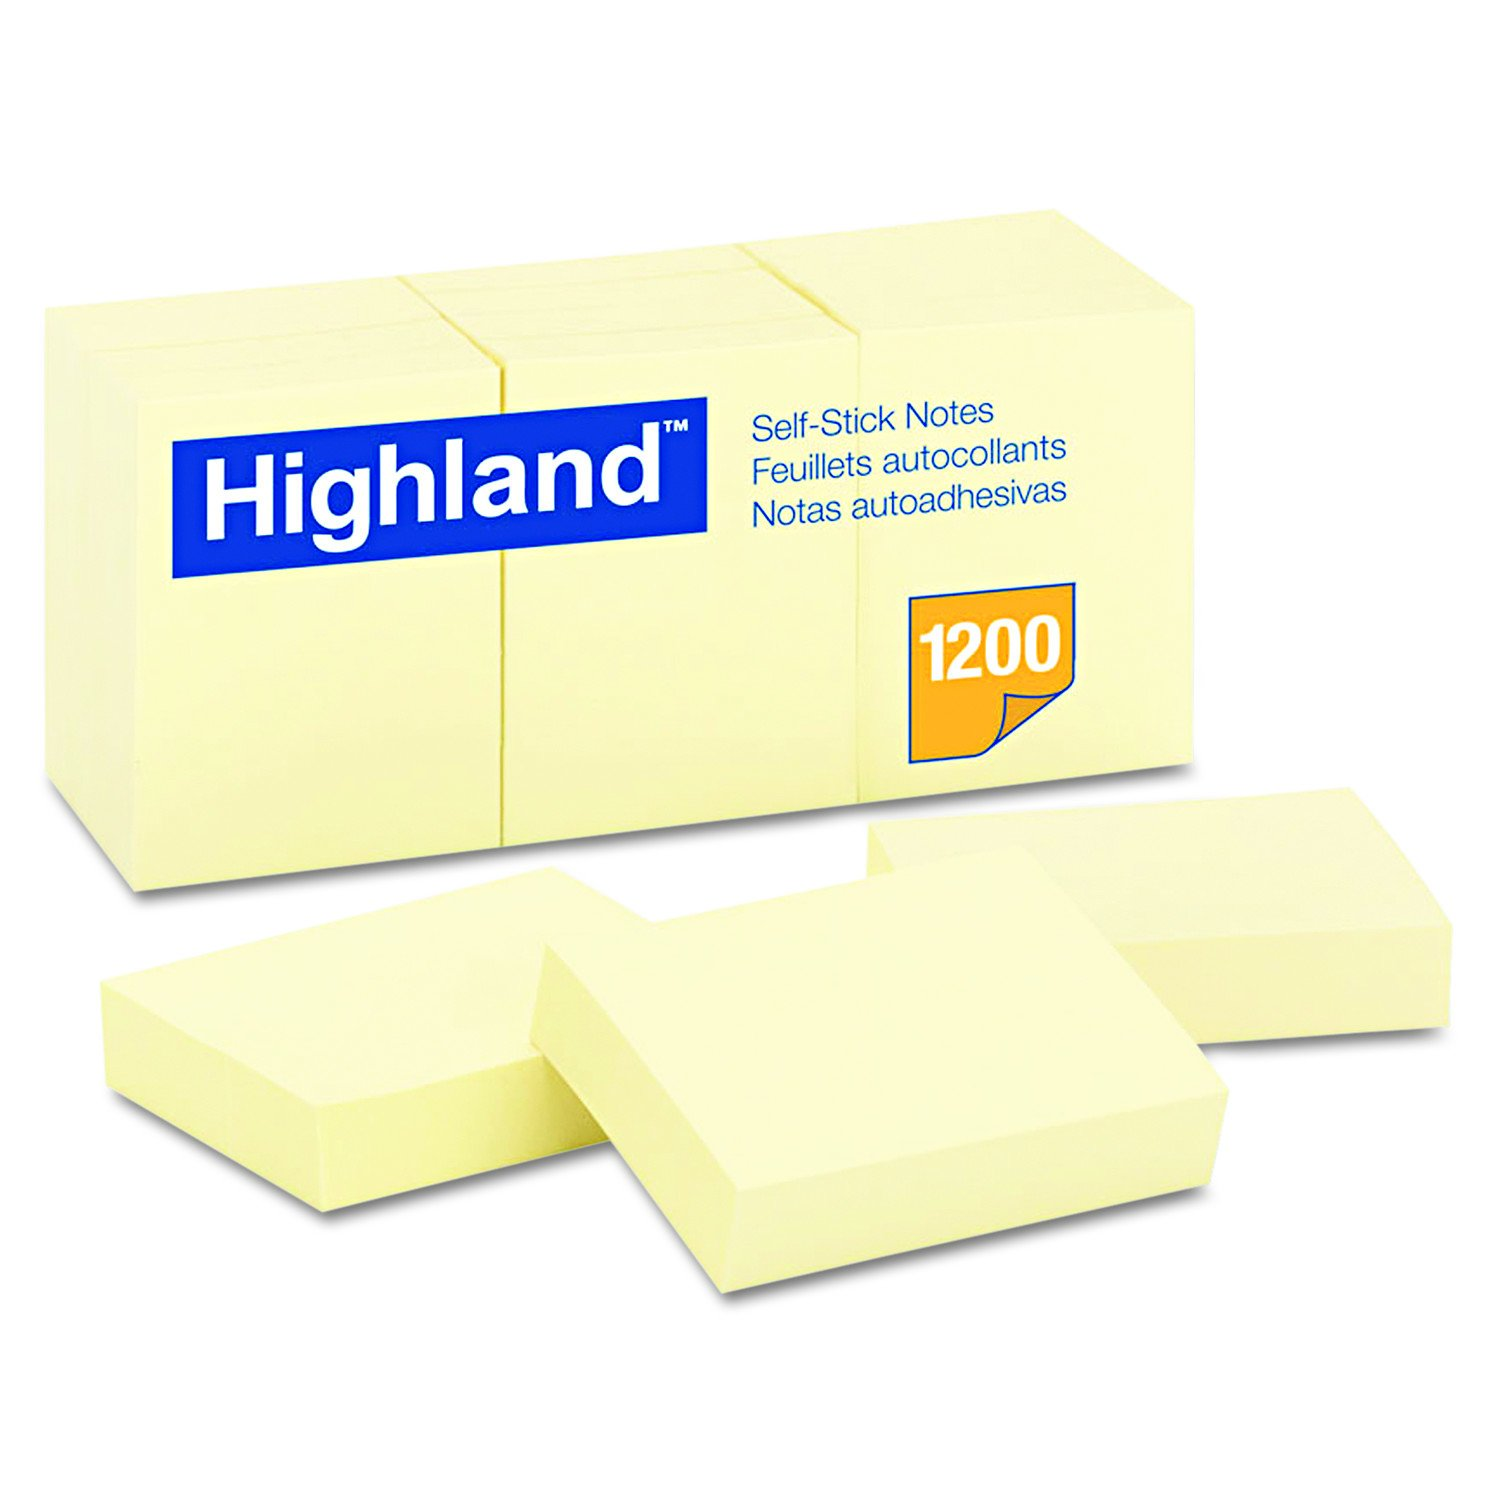 Highland 6539YW Self-Stick Notes, 1 1/2 x 2, Yellow, 100-Sheet (Pack of 12) by Highland (Image #1)